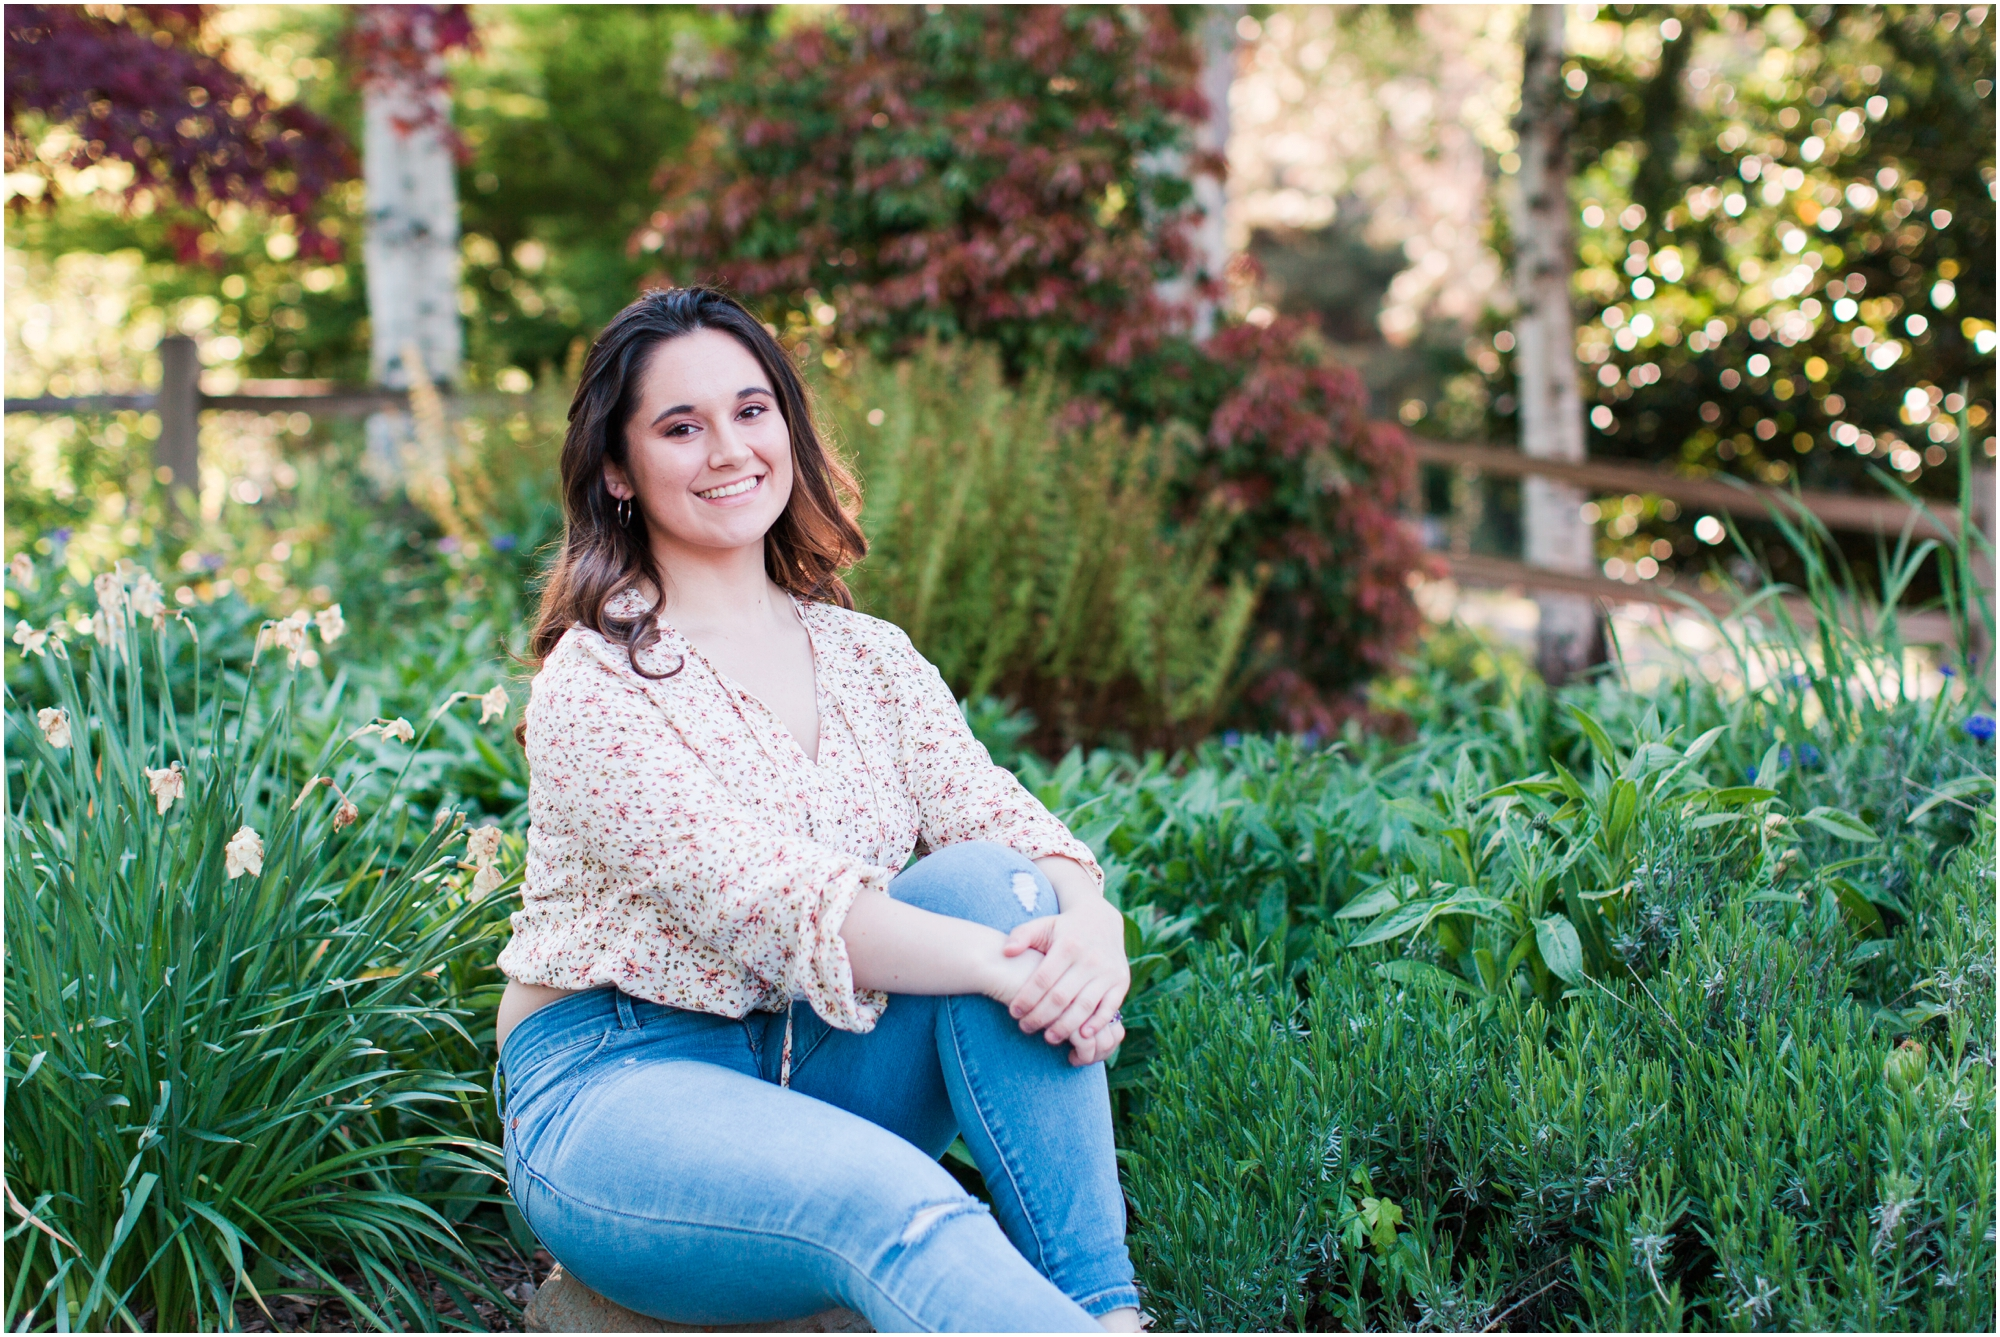 Senior Portraits at Point Defiance Park in Tacoma.  Photos by Briana Calderon Photography based in the greater Seattle Tacoma Area._1113.jpg